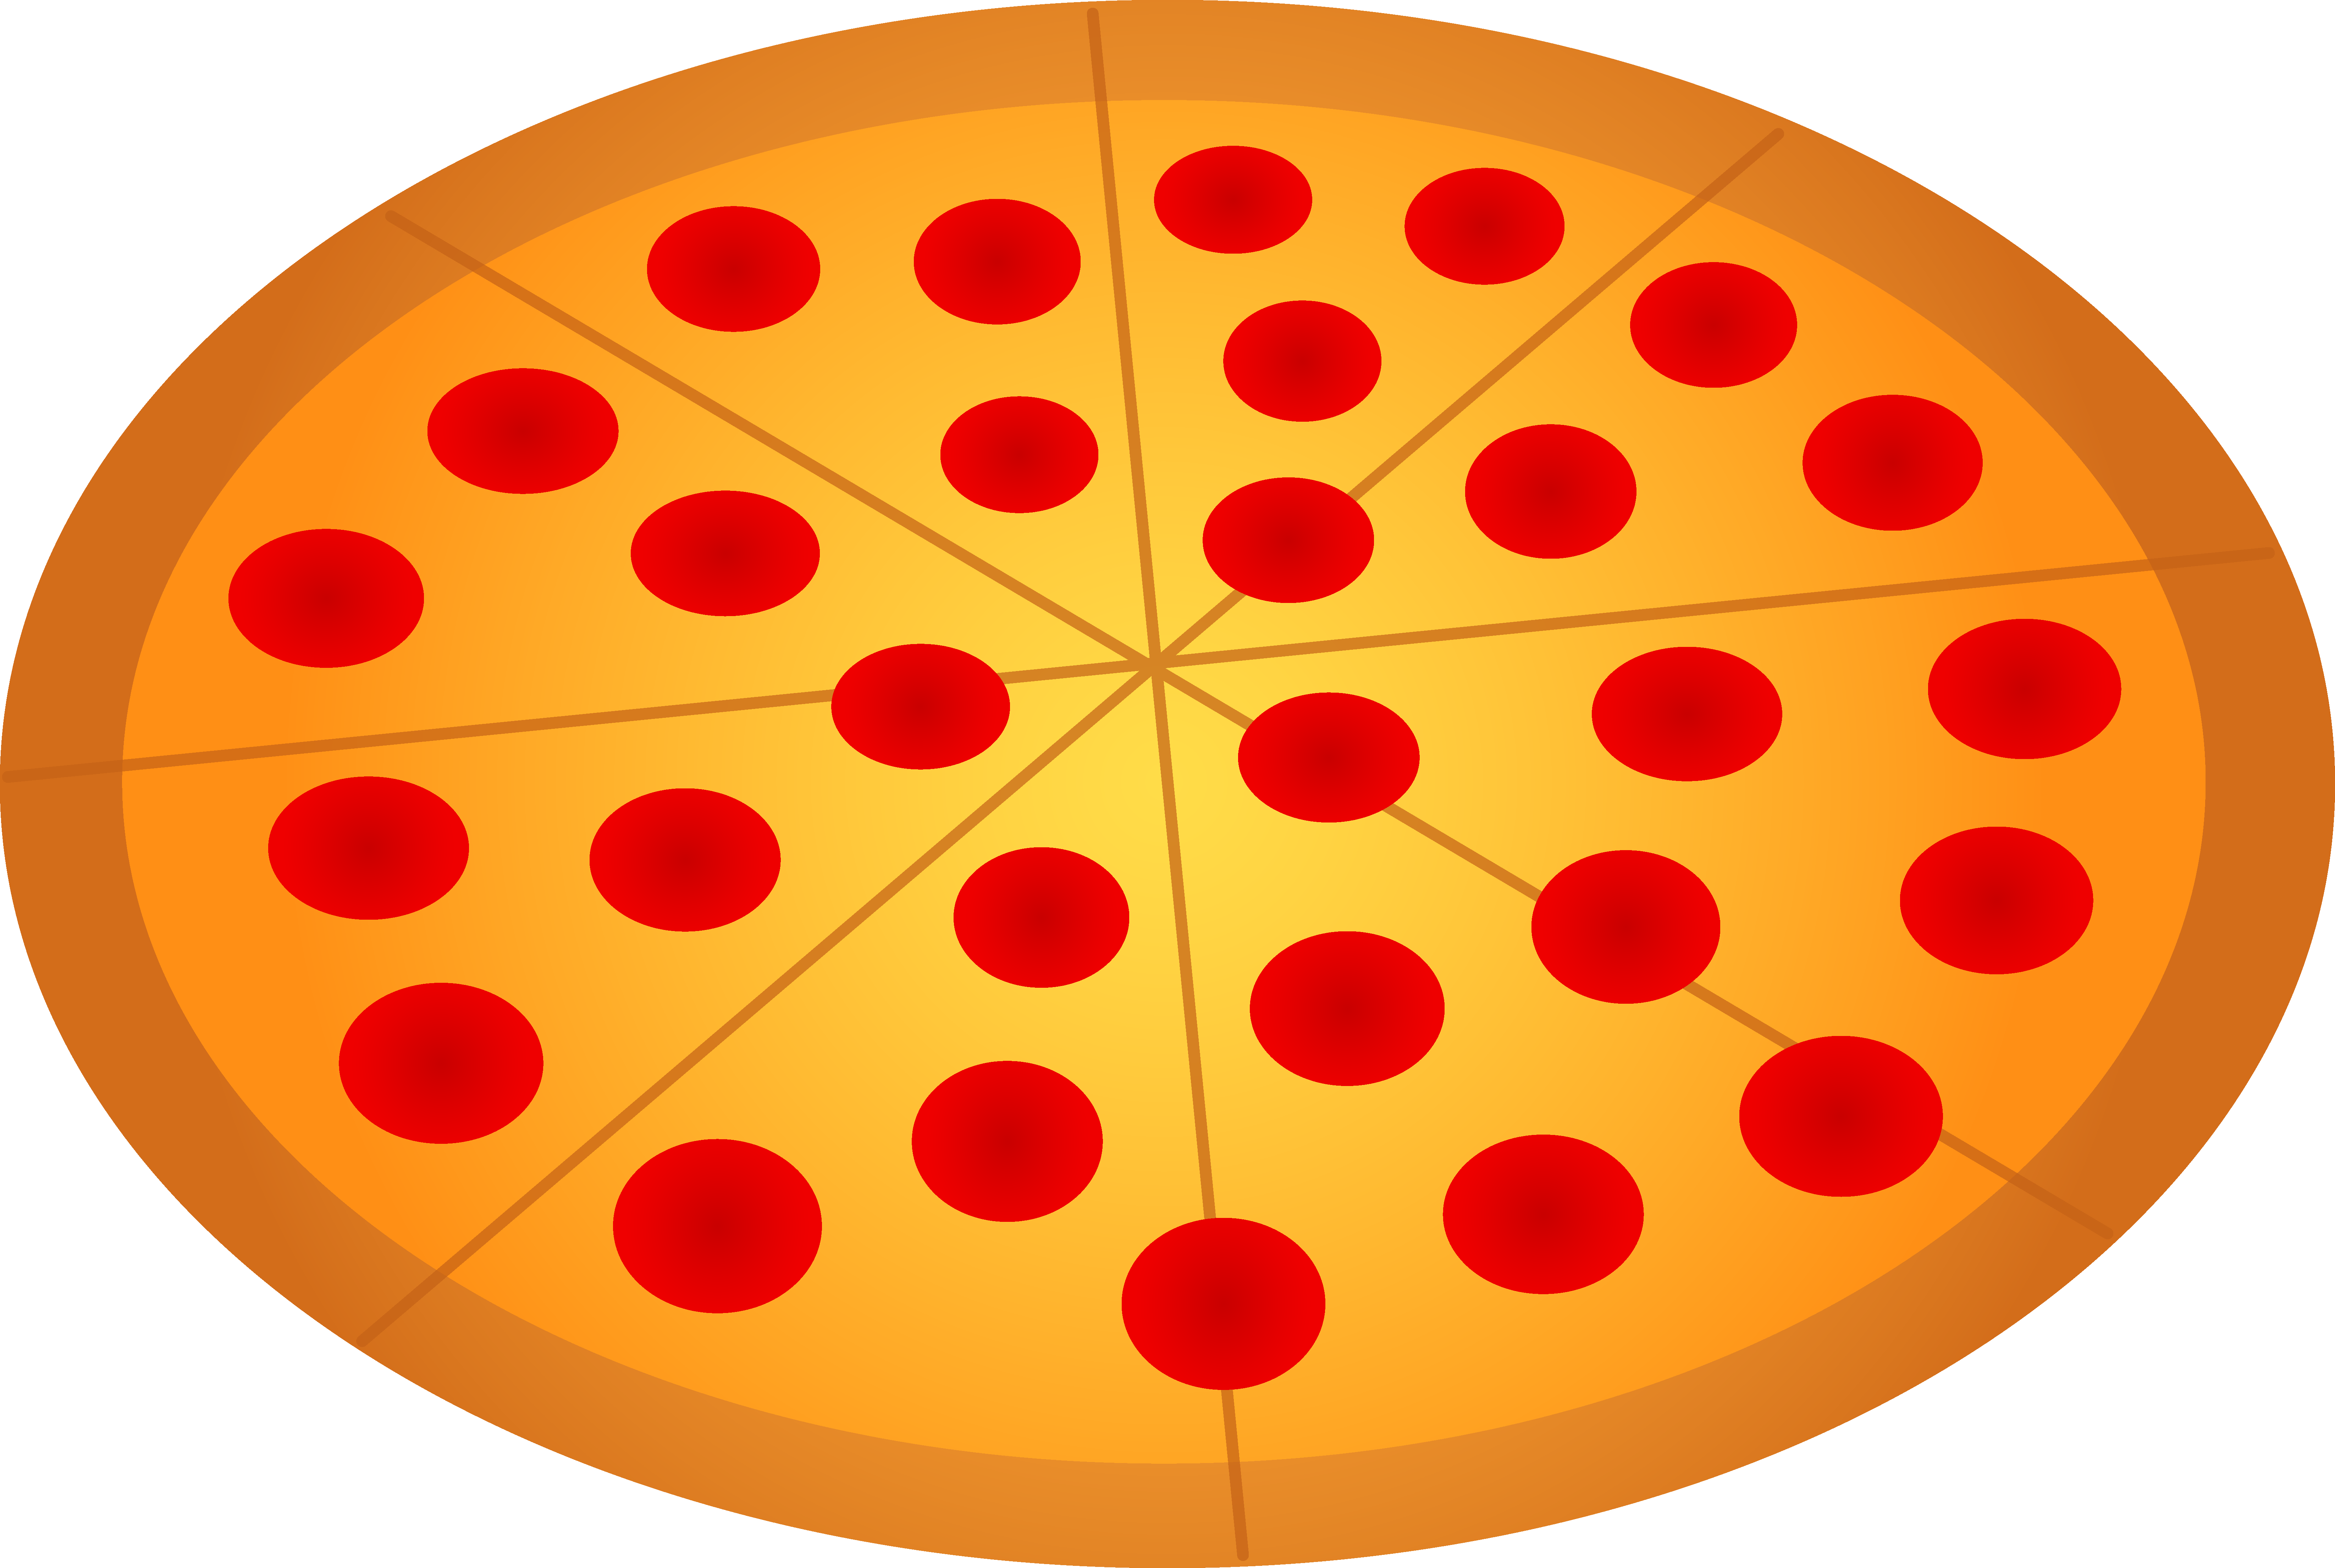 Whole pepperoni free clip. Mushrooms clipart pizza topping